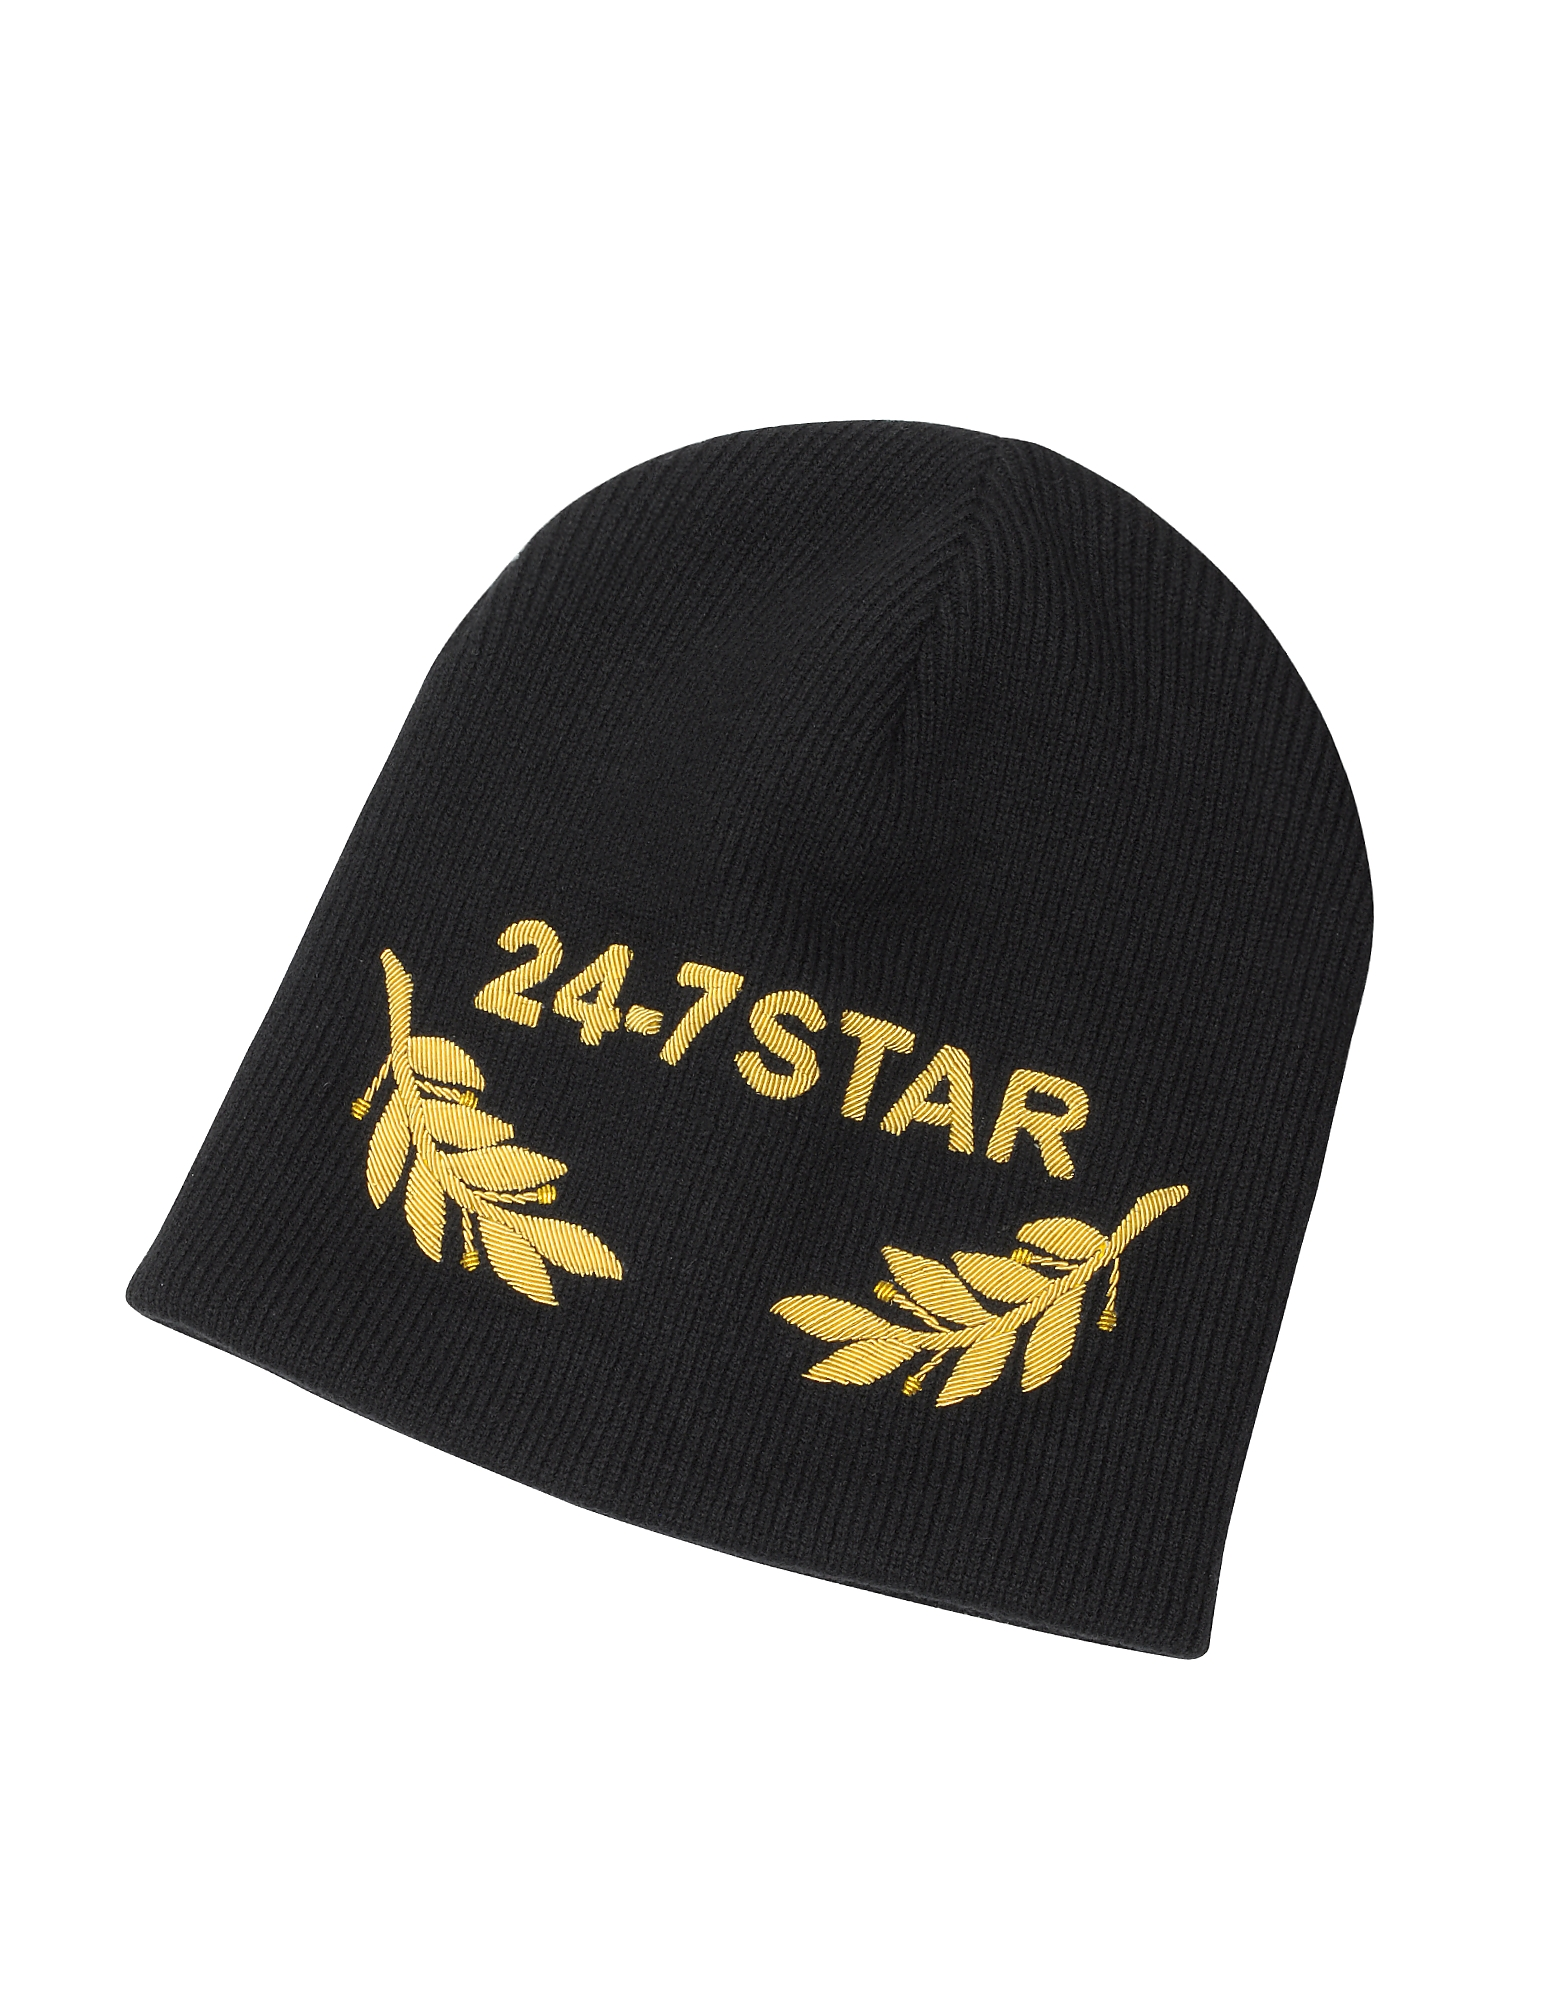 Image of 24-7 Star Icon Cappello Nero in Lana